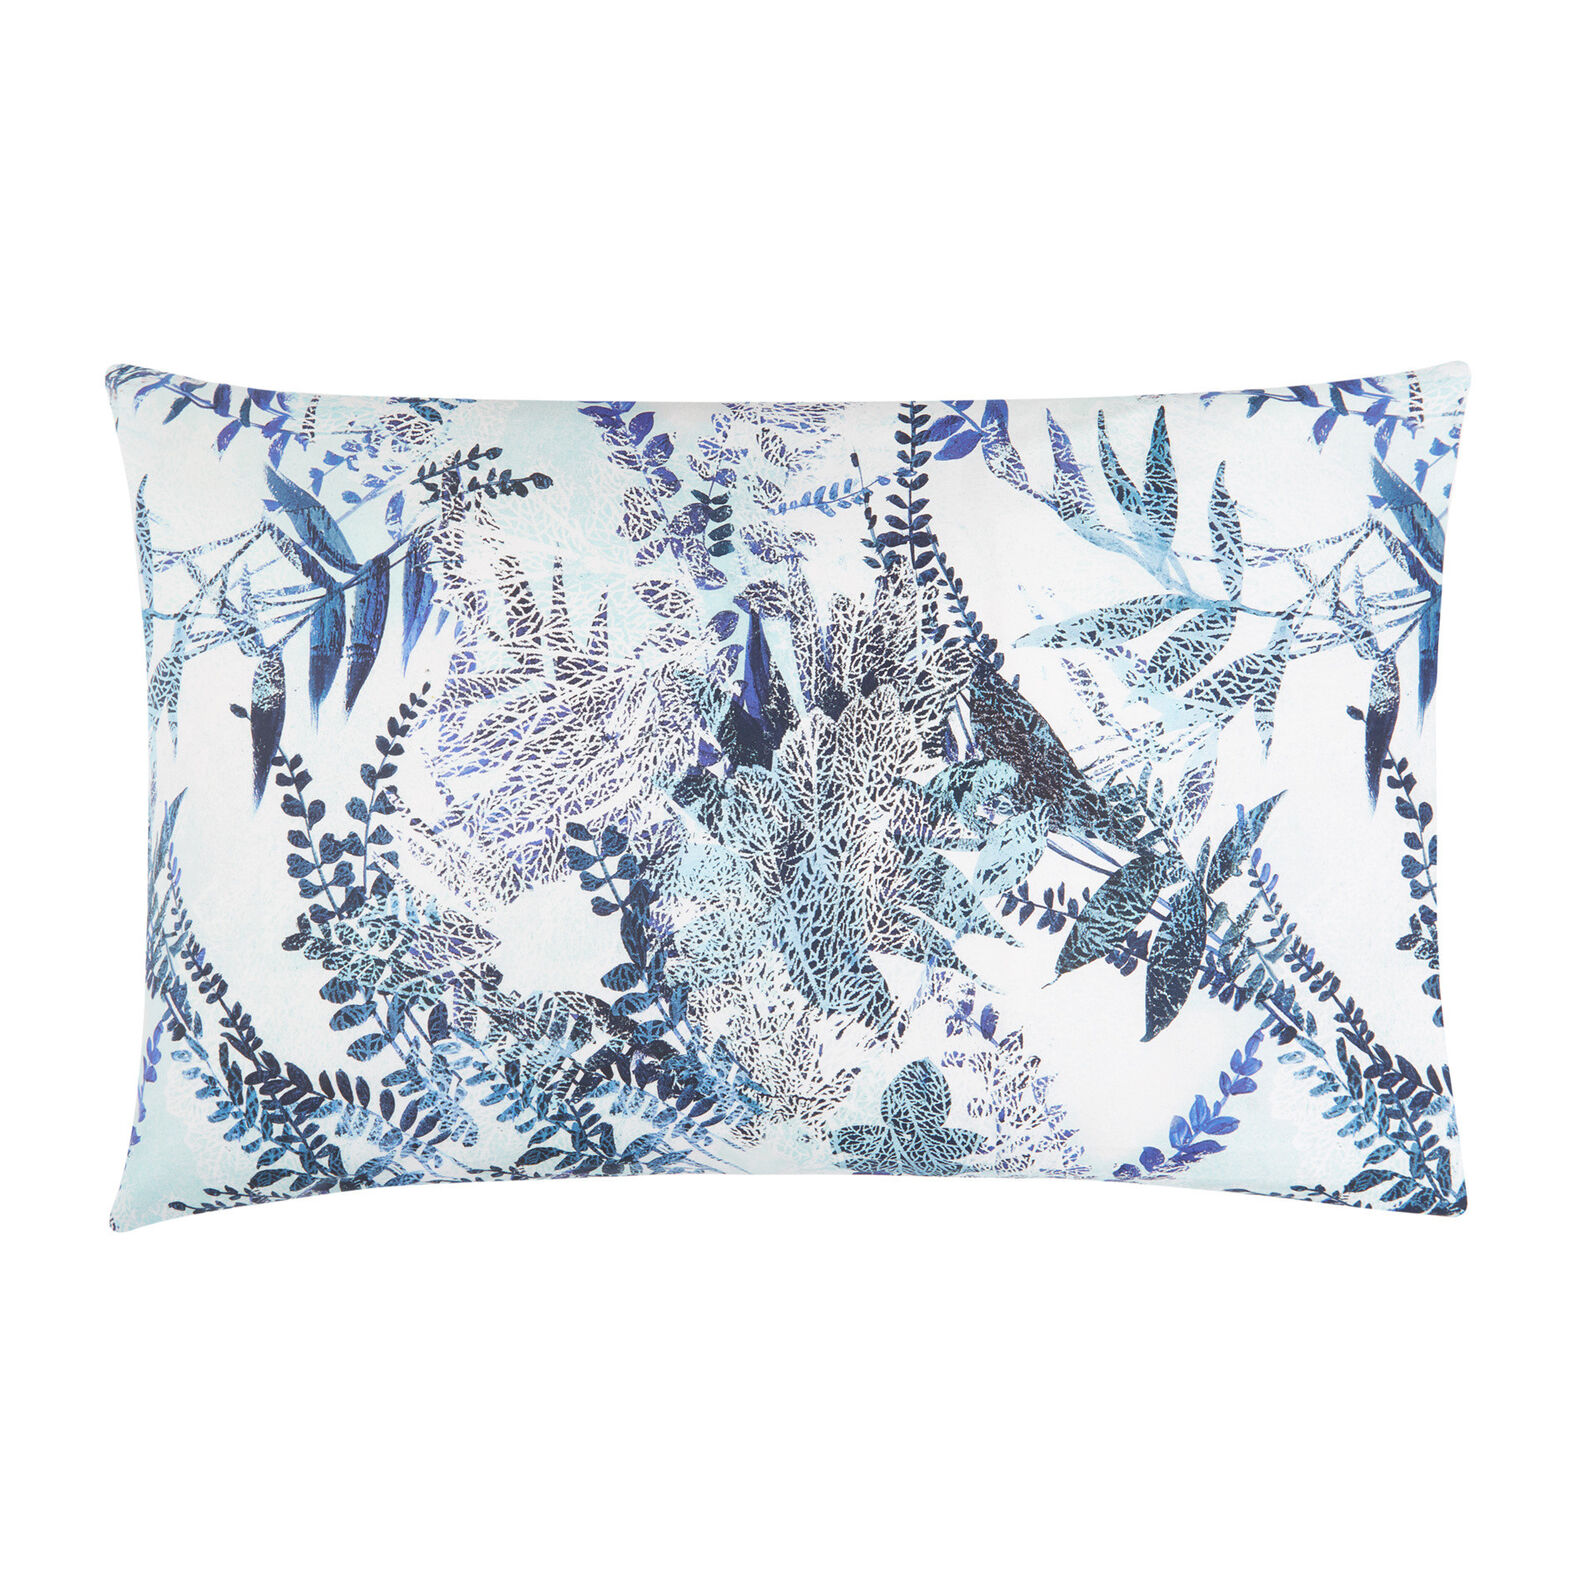 Organic cotton pillowcase with leaf pattern